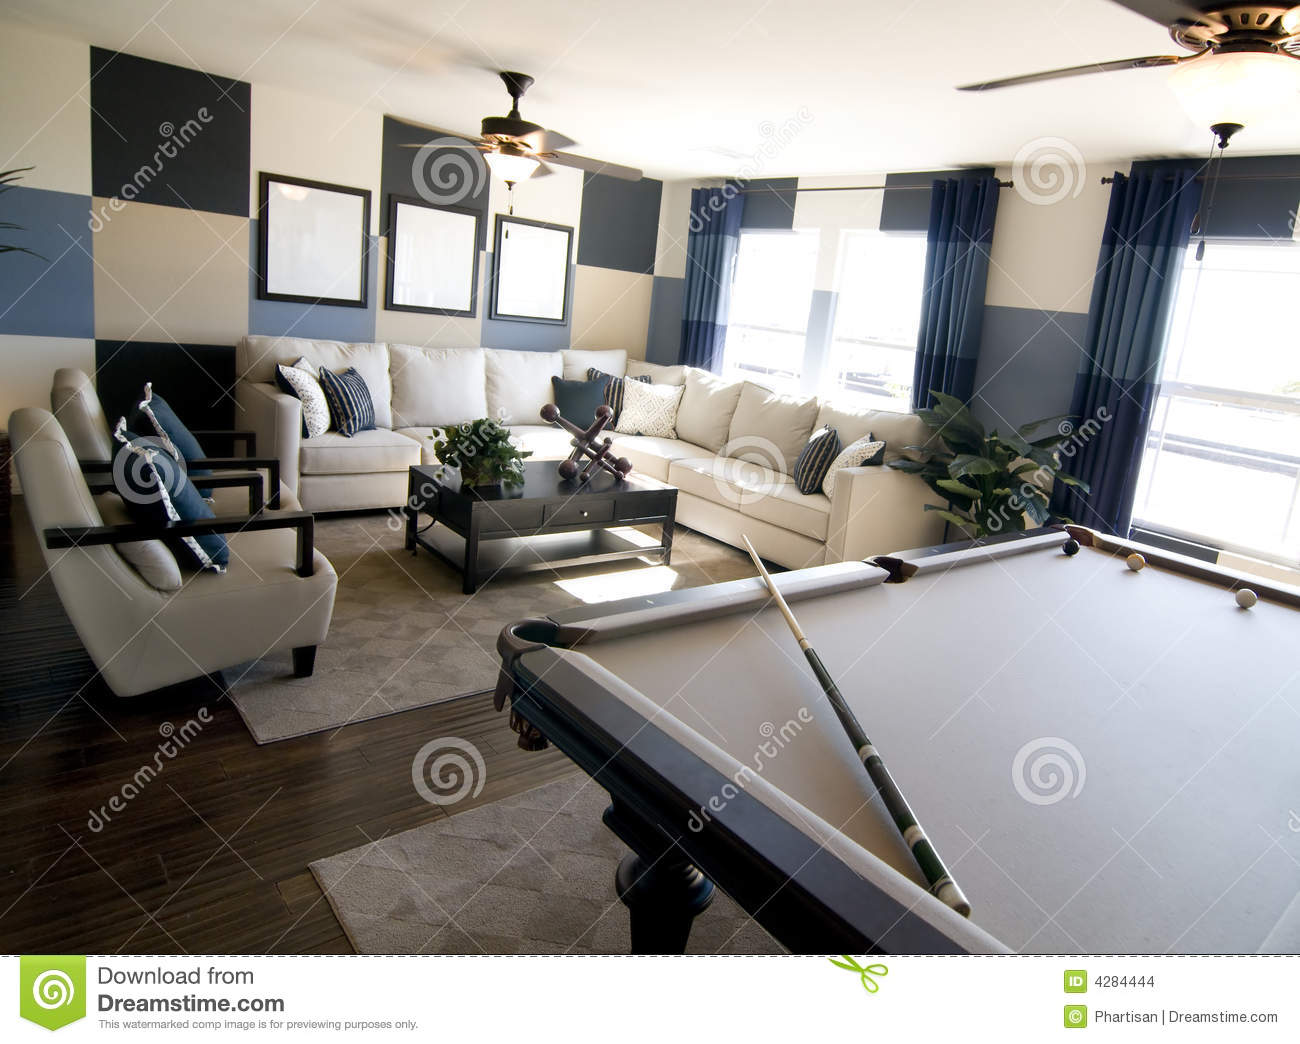 Luxury Game Room Interior Design Stock Photo - Image of decorate ...